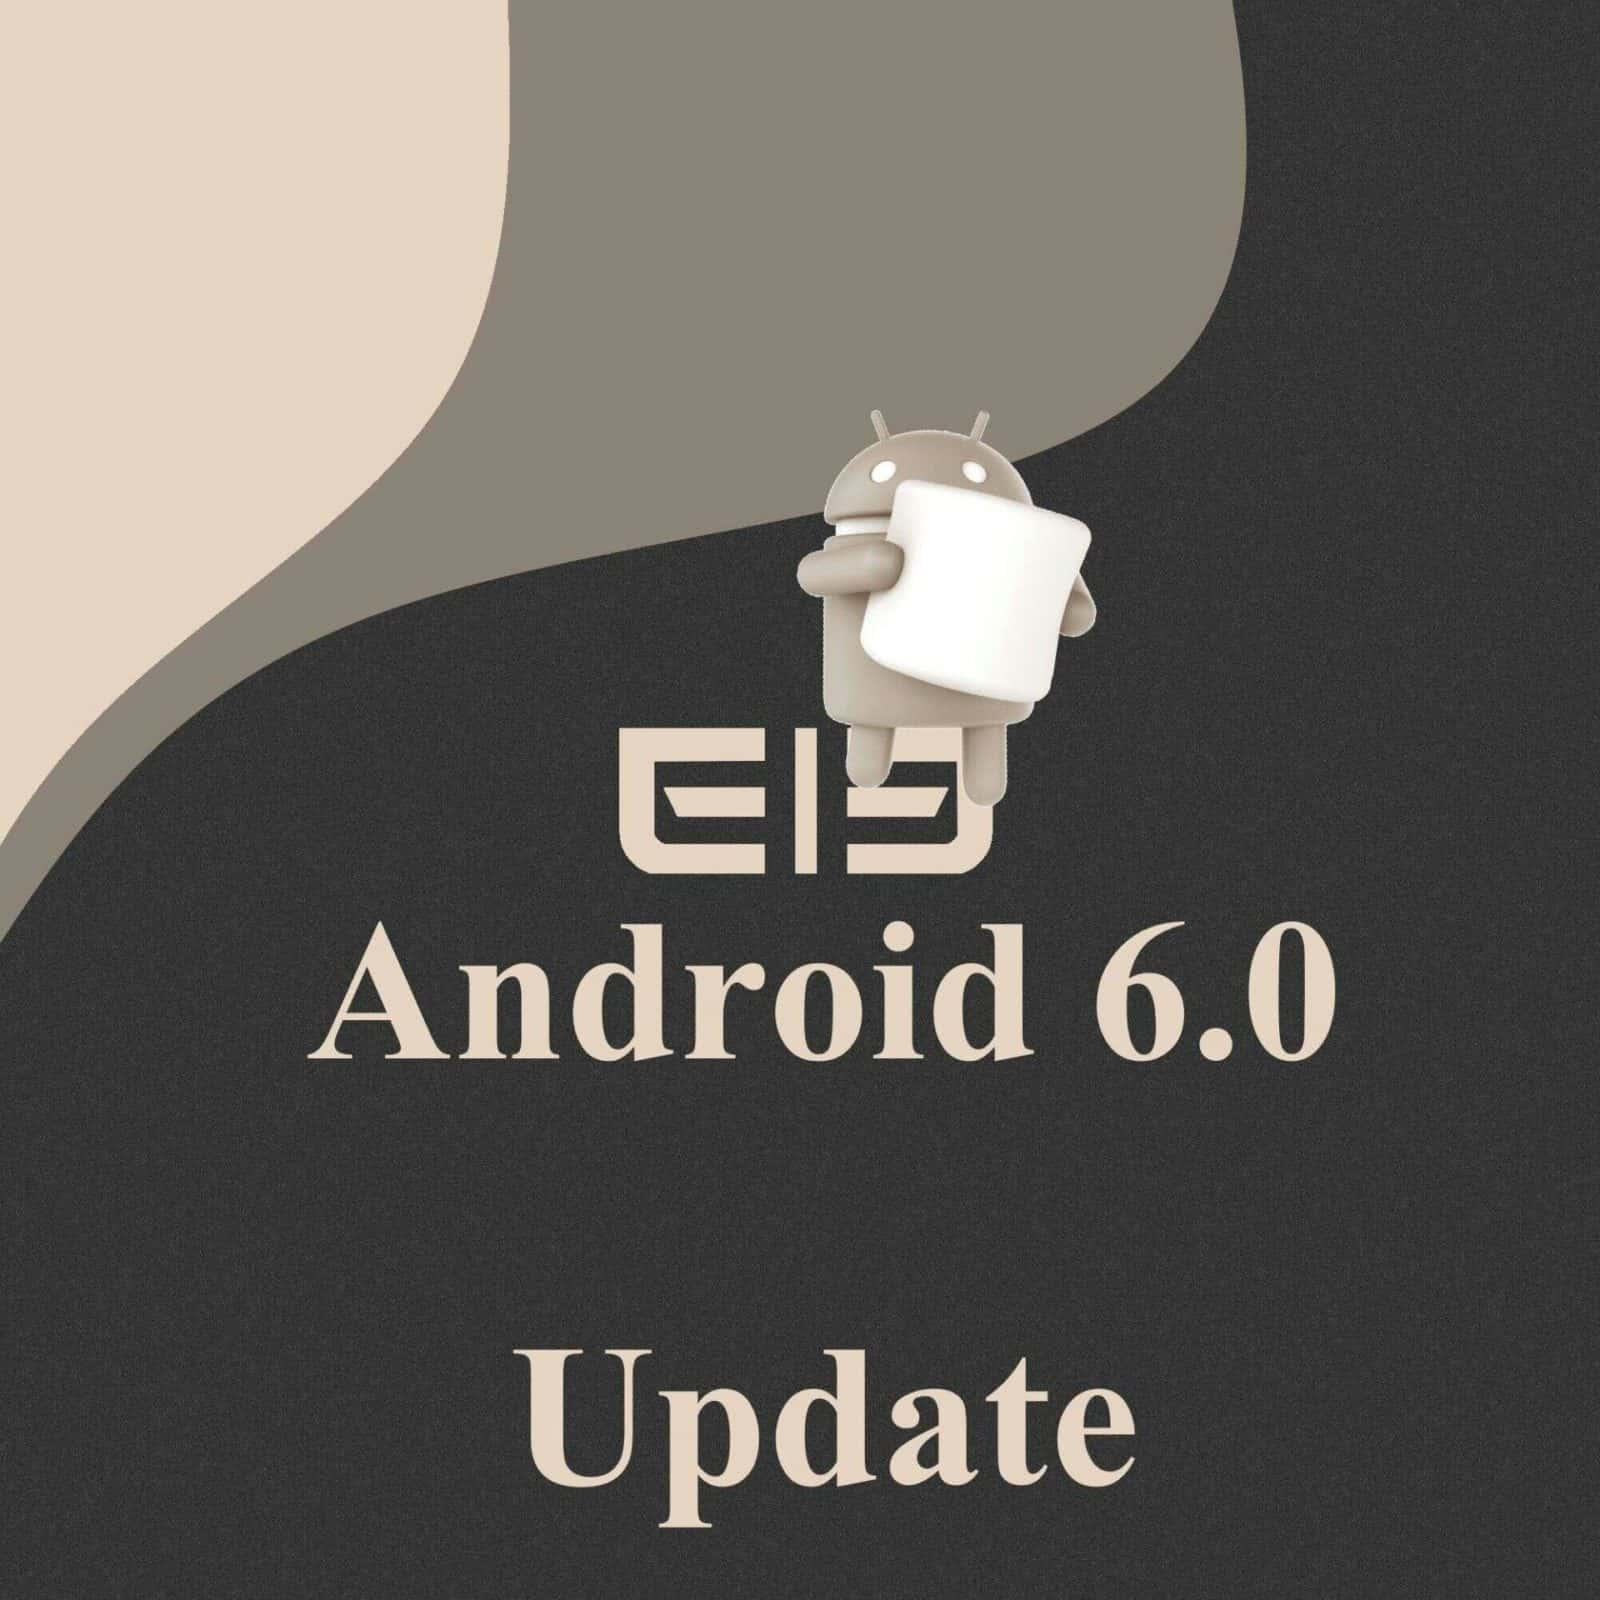 Elephone Android 6.0 Marshmallow update_3